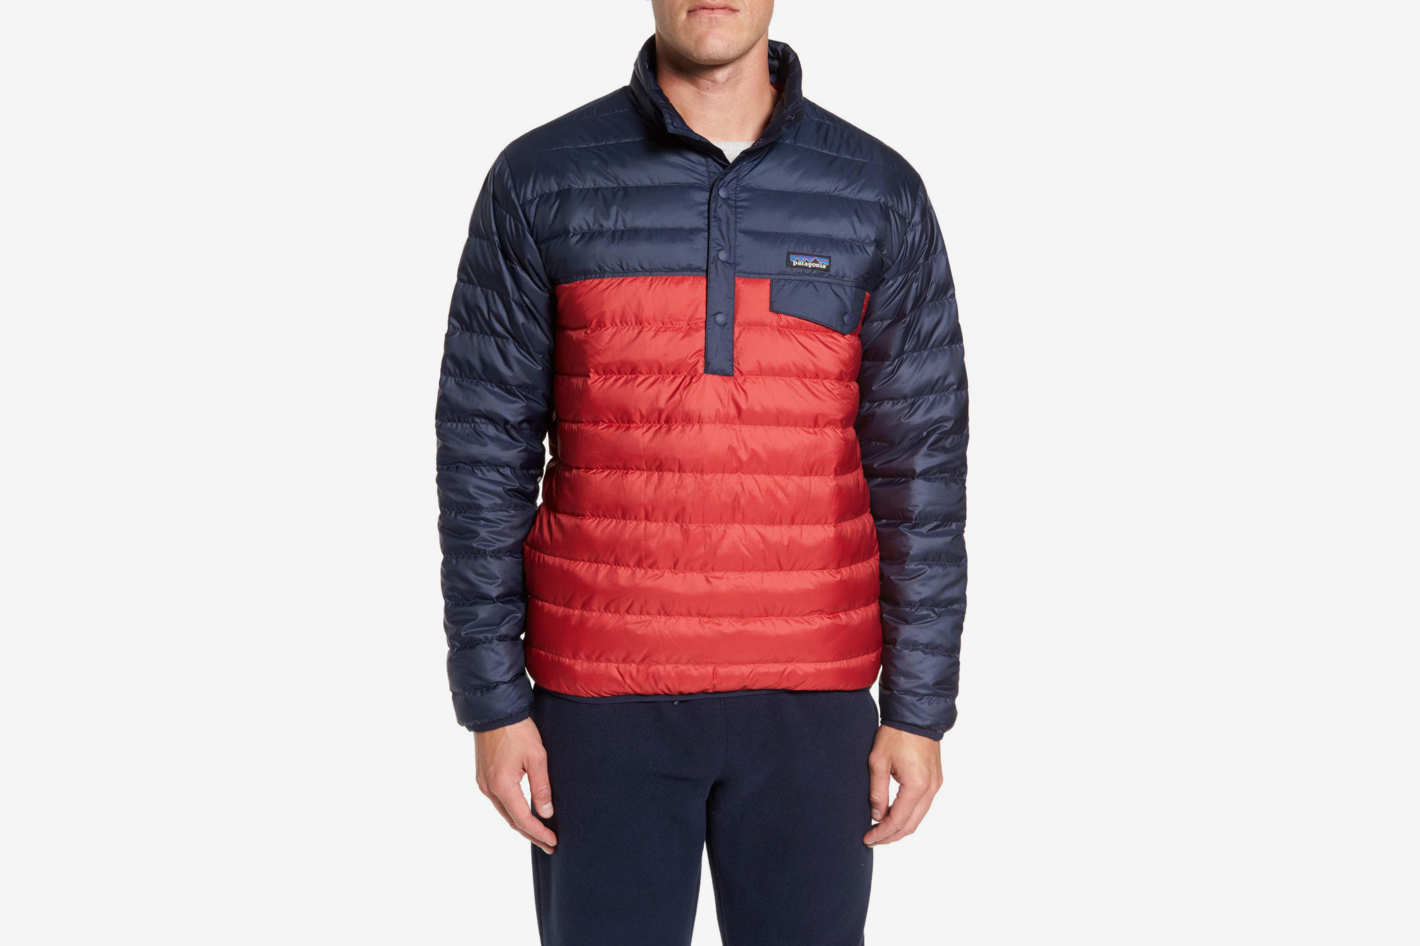 Patagonia And North Face For Men On Sale 2018